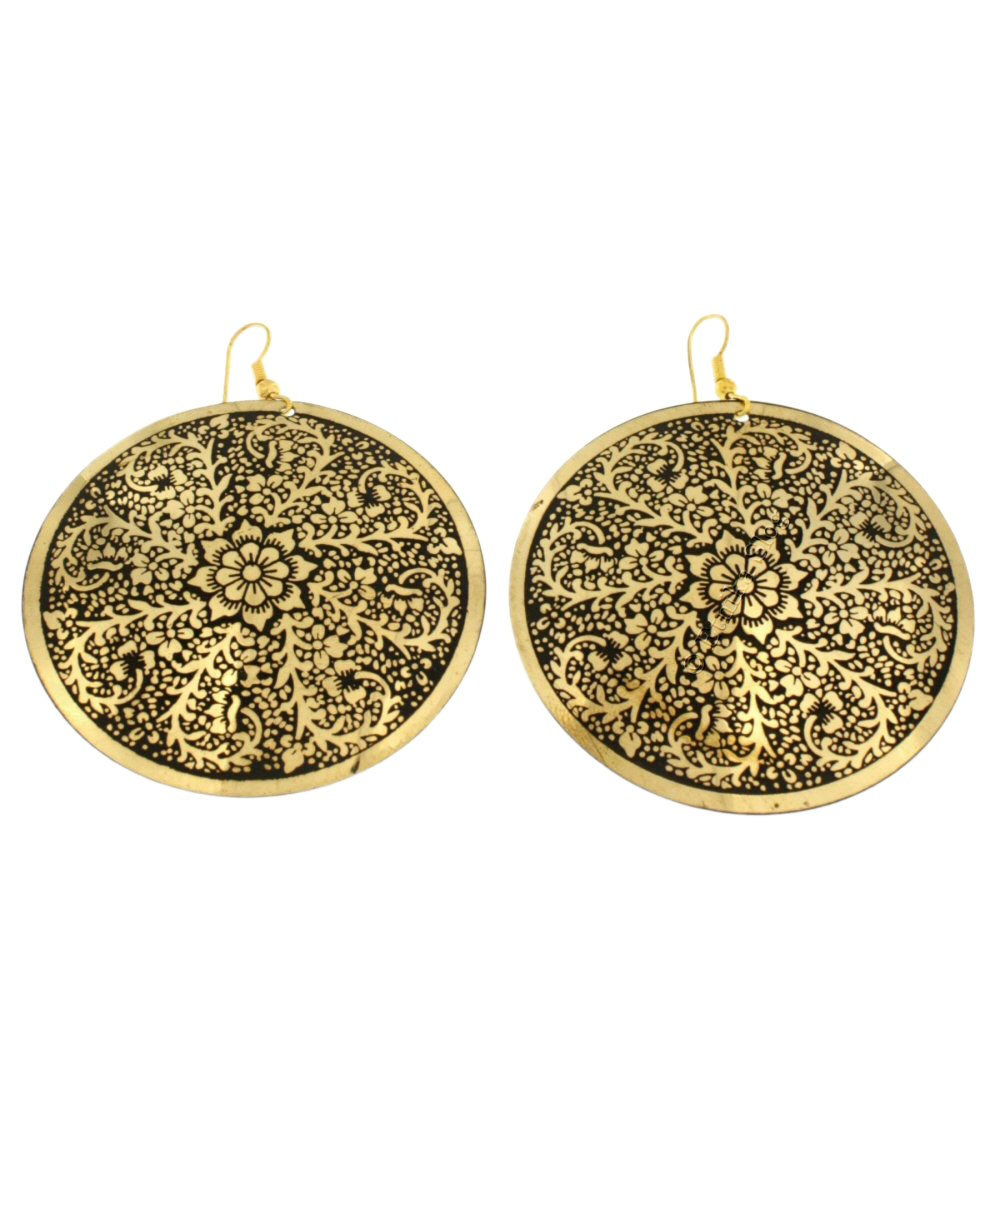 EARRINGS - METAL MB-OROT01-13 - Oriente Import S.r.l.